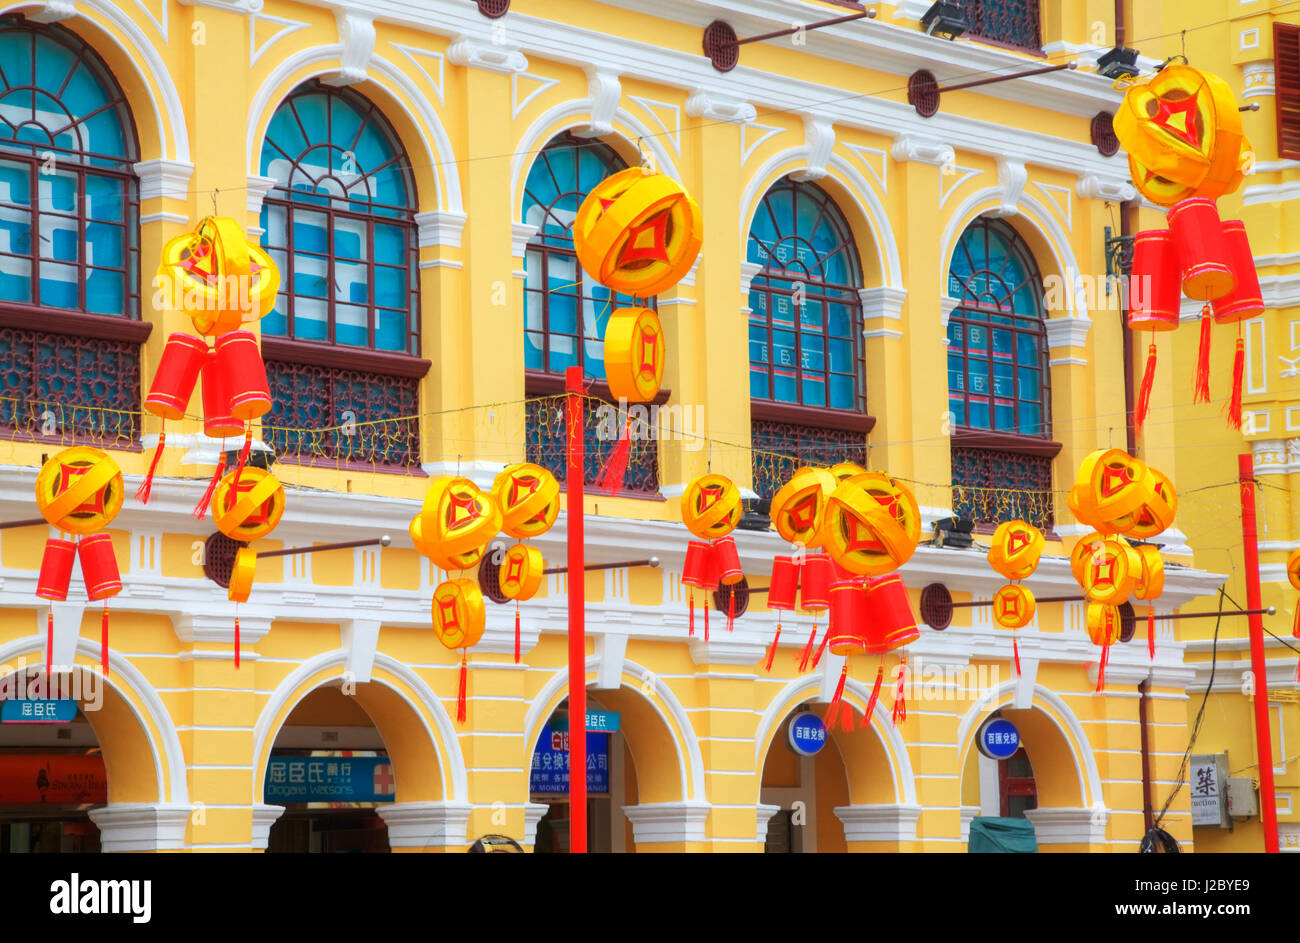 China, Macau, Tile Covered Streets in Main Shopping Area of Town at ...